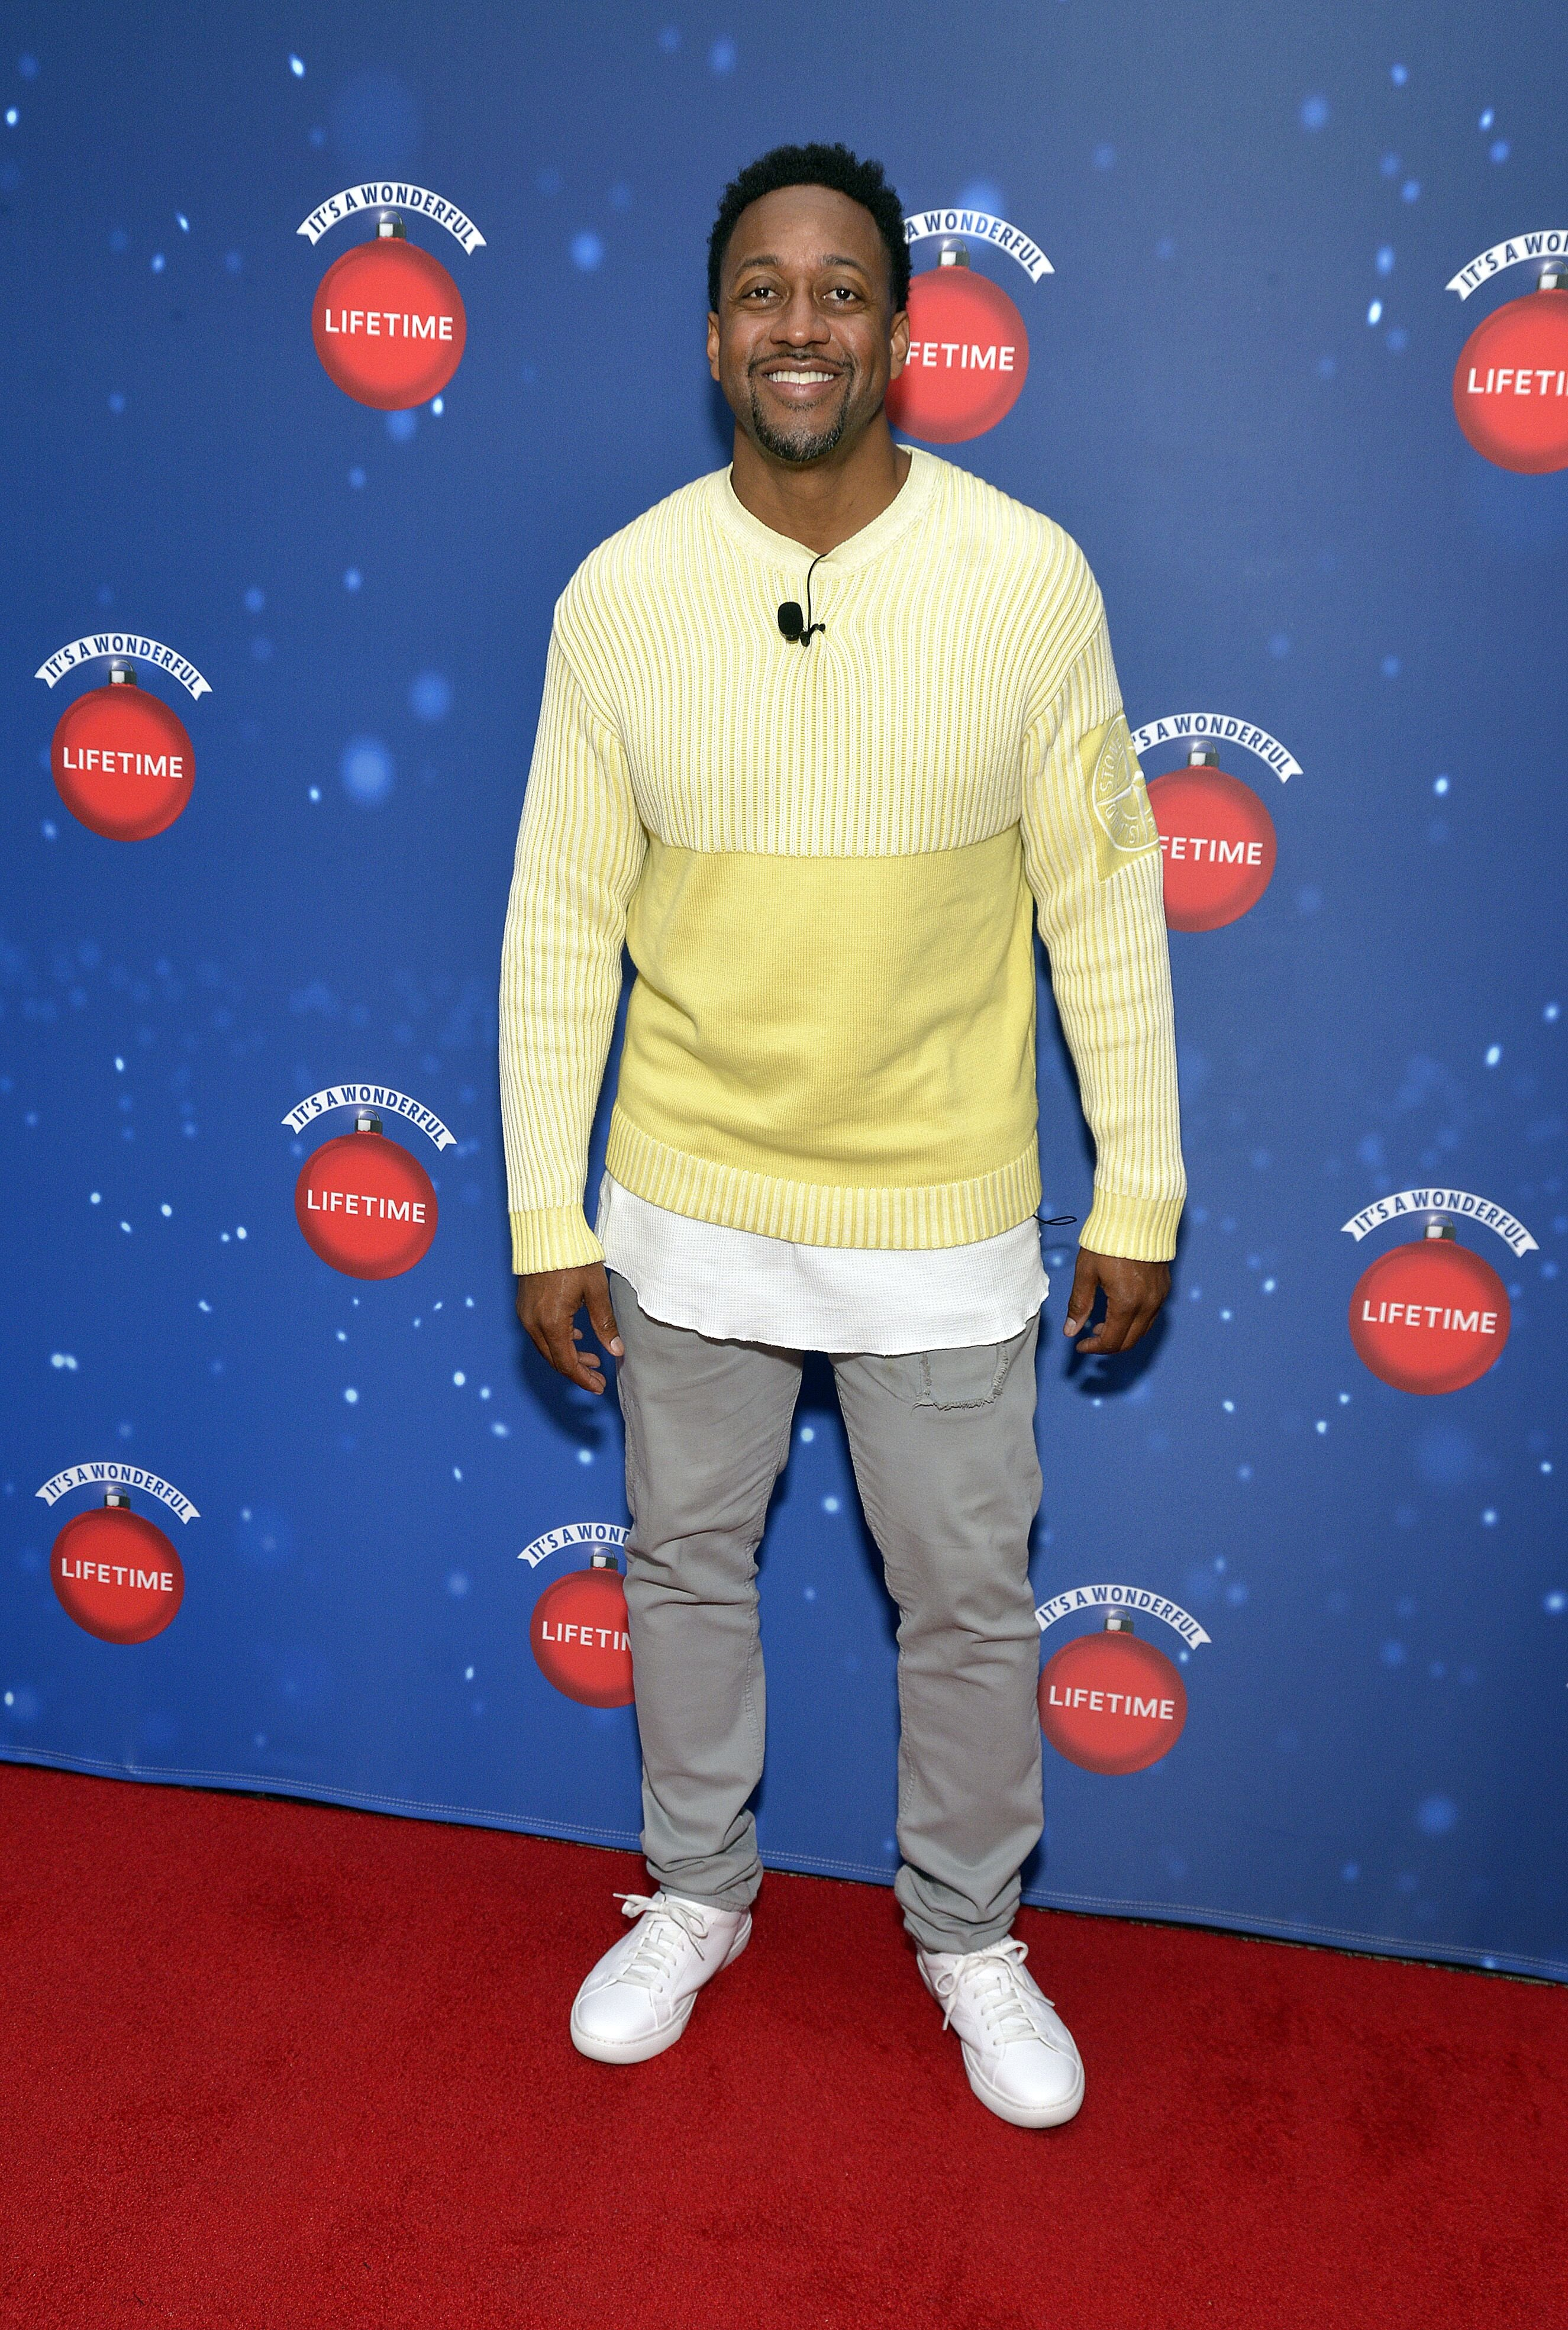 Jaleel White attends a Lifetime Christmas event | Source: Getty Images/GlobalImagesUkraine